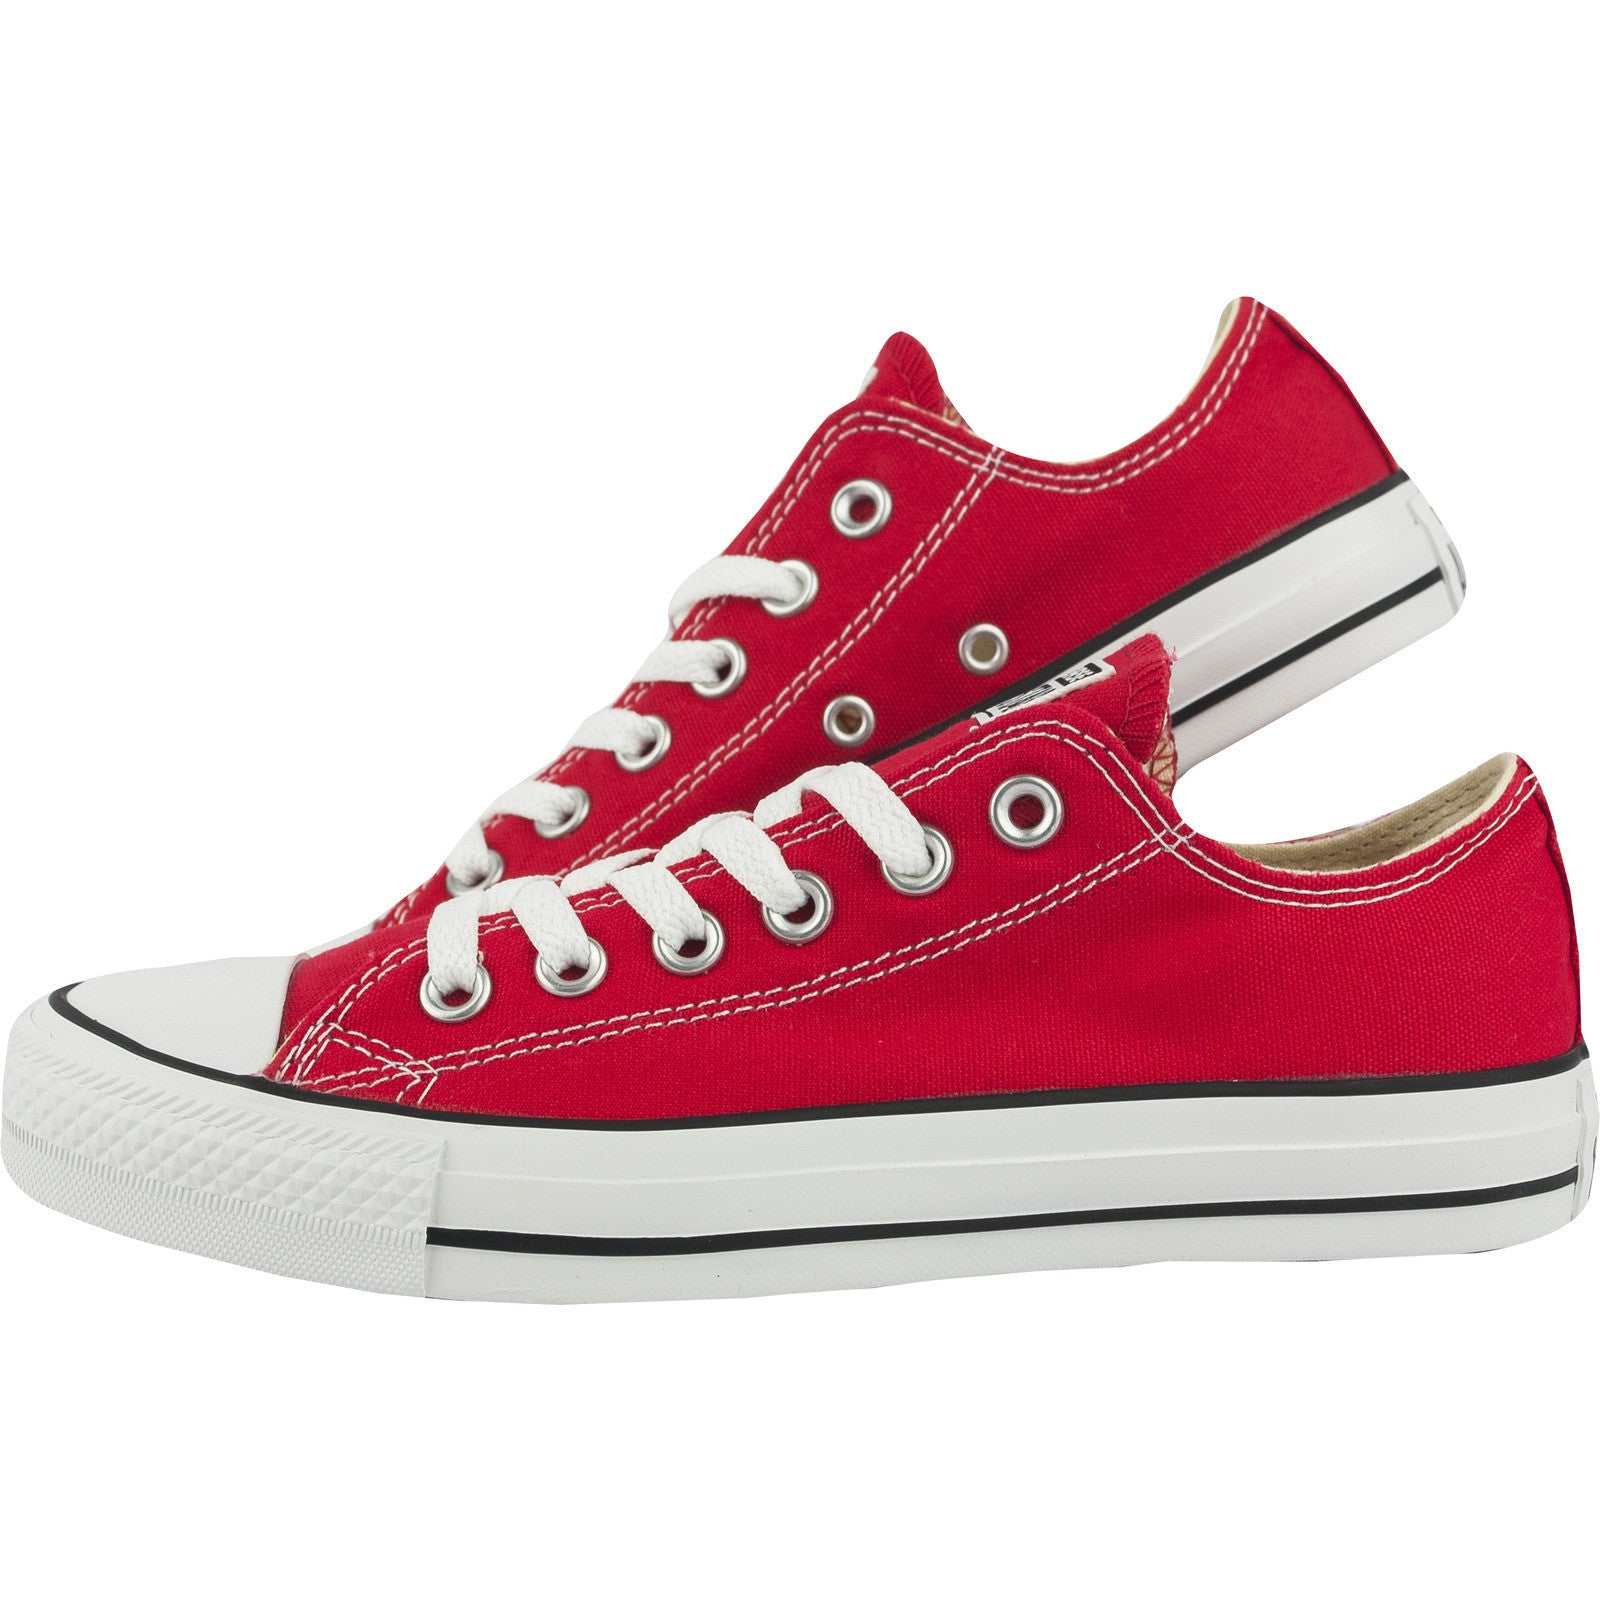 556b99c4eb1782 ... new zealand converse classic chuck taylor red low tops trainer sneaker all  star ox new sizes